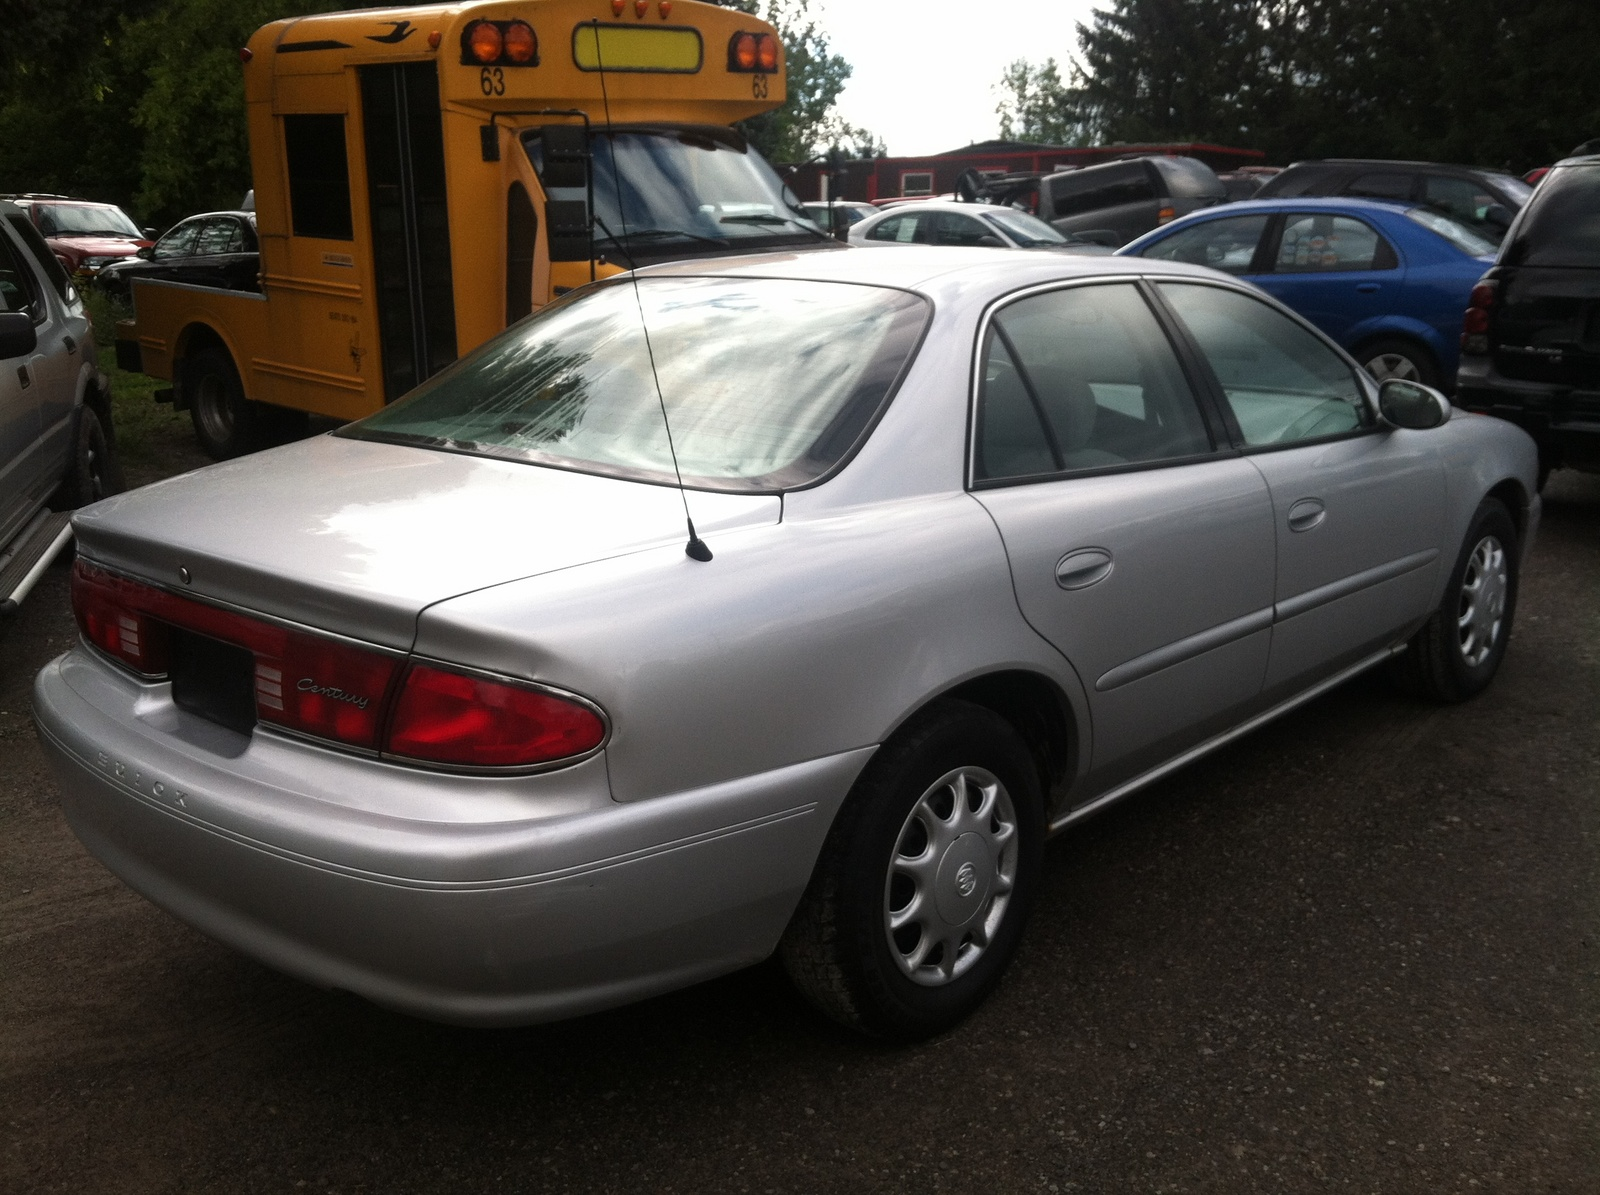 Buick Century Custom Pic on 2004 Buick Lesabre Limited Special Edition